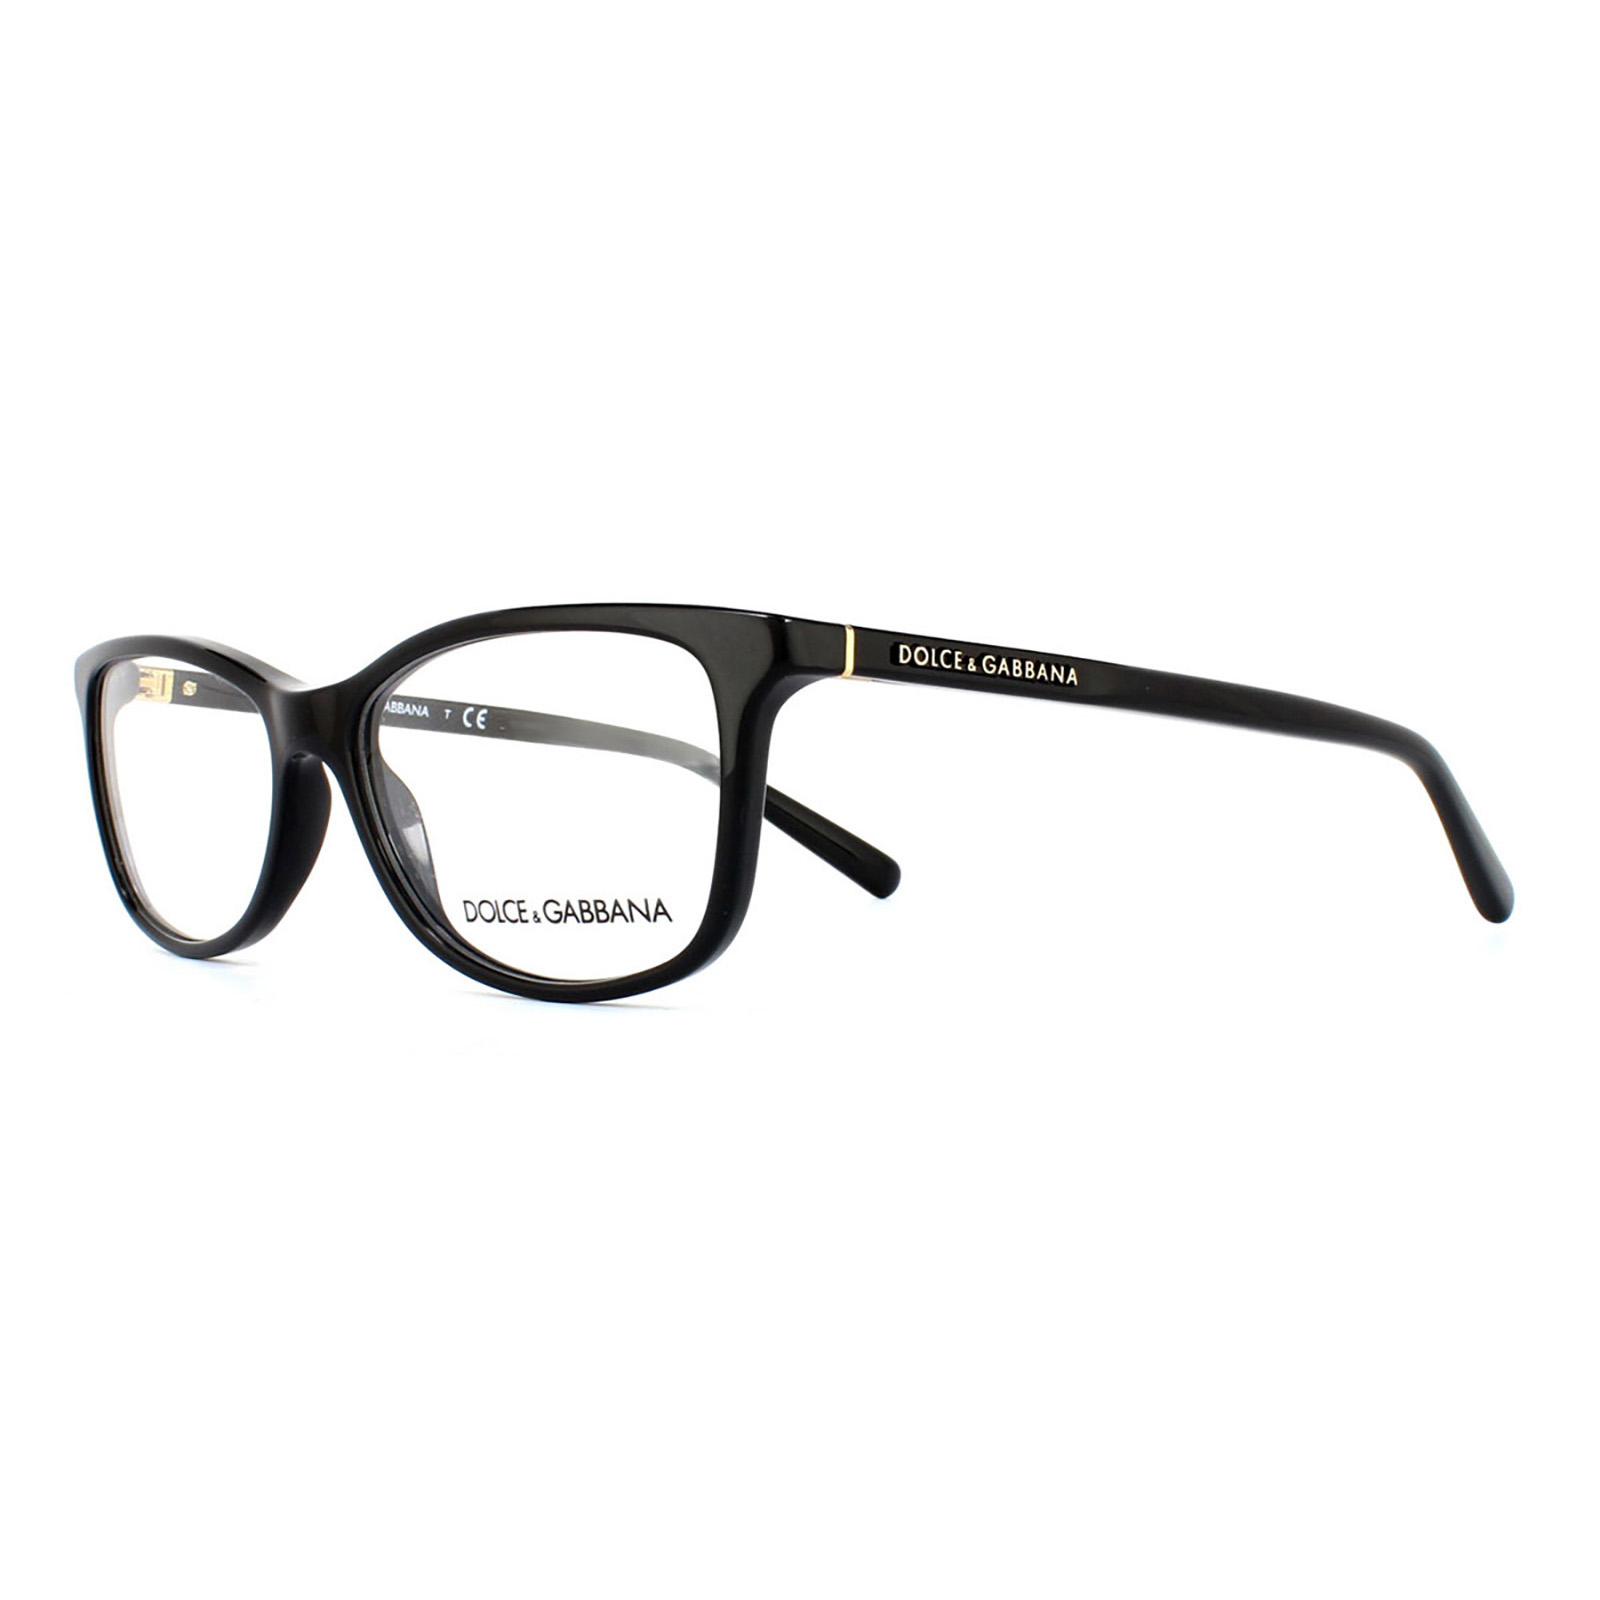 Dolce and Gabbana Glasses Frames 3222 501 Black Womens ...